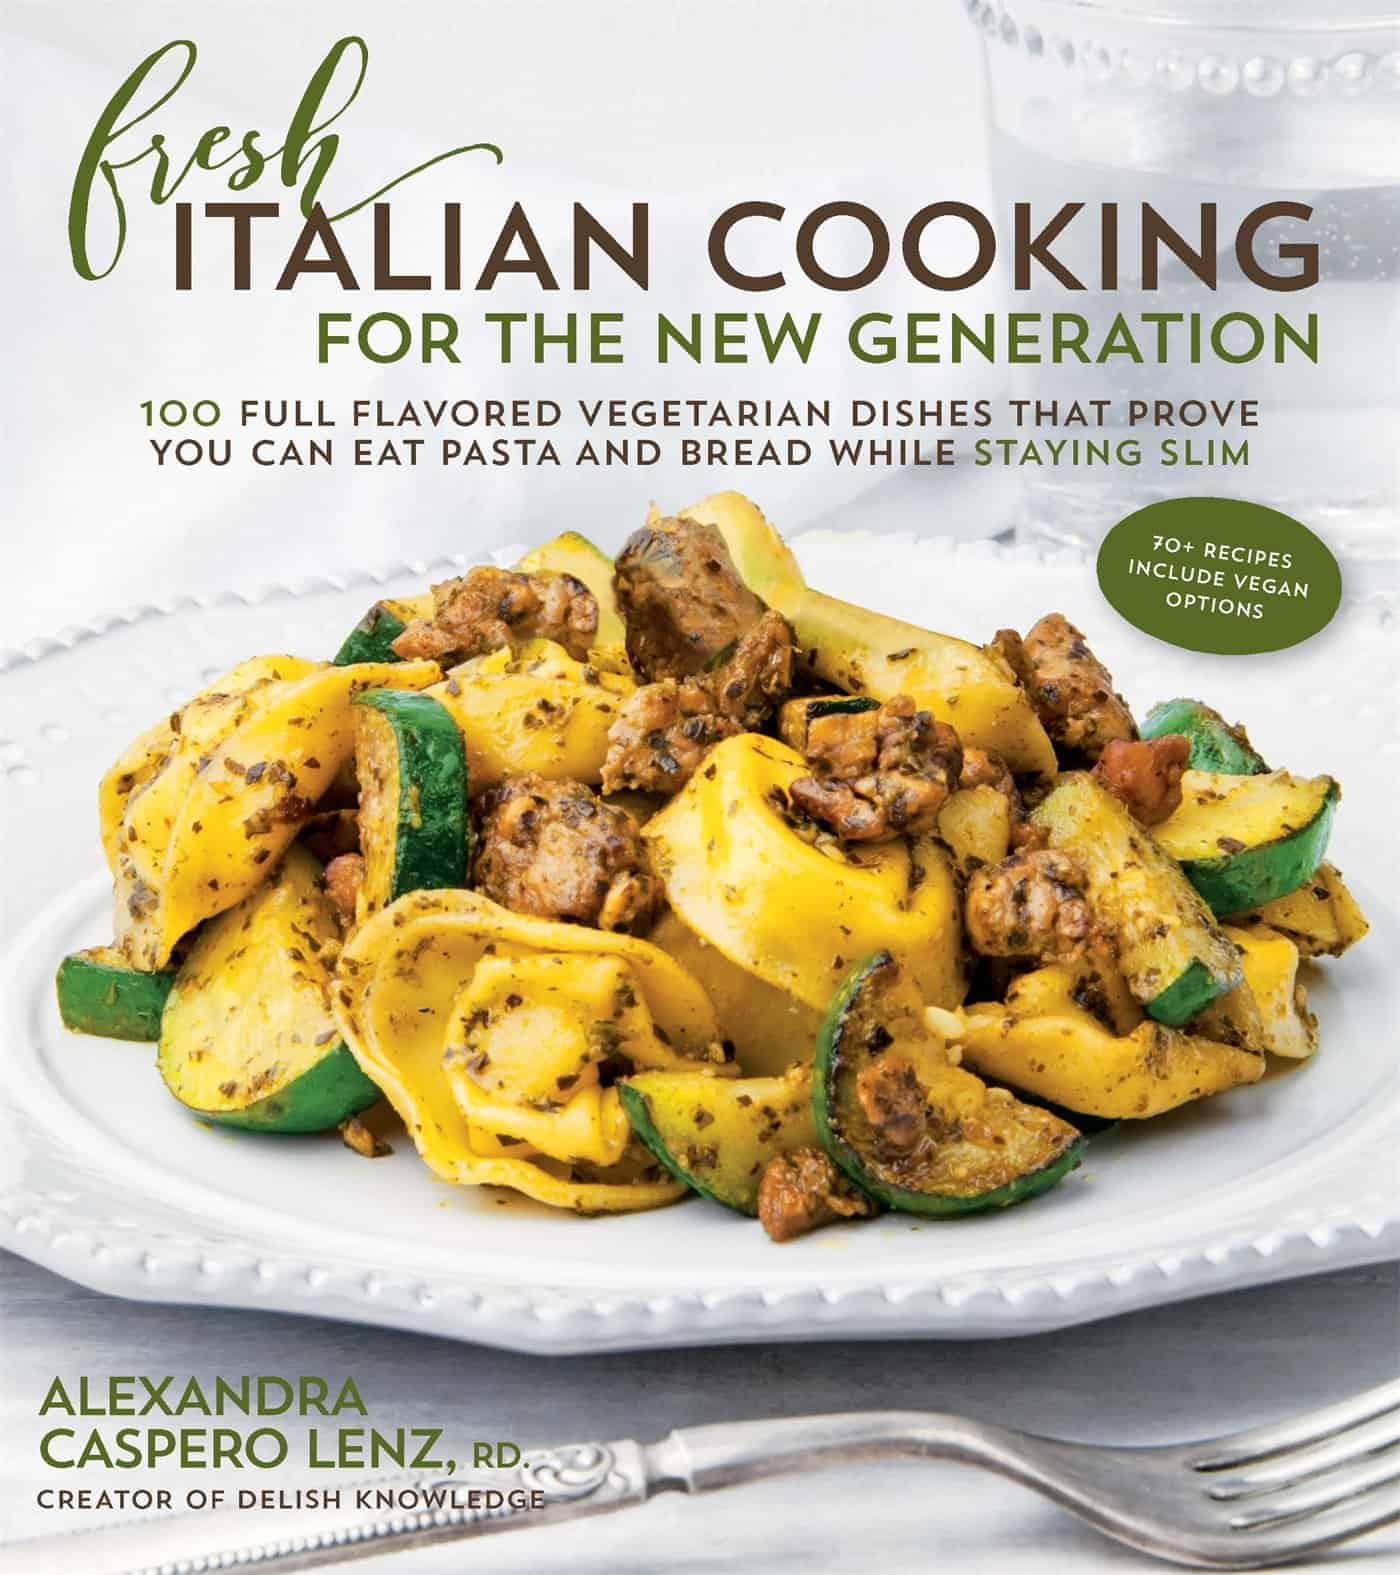 Author of Fresh Italian Cooking for the New Generation (Page Street Publishing) 100 Full-Flavored Vegetarian Dishes That Prove You Can Stay Slim While Eating Pasta and Bread.